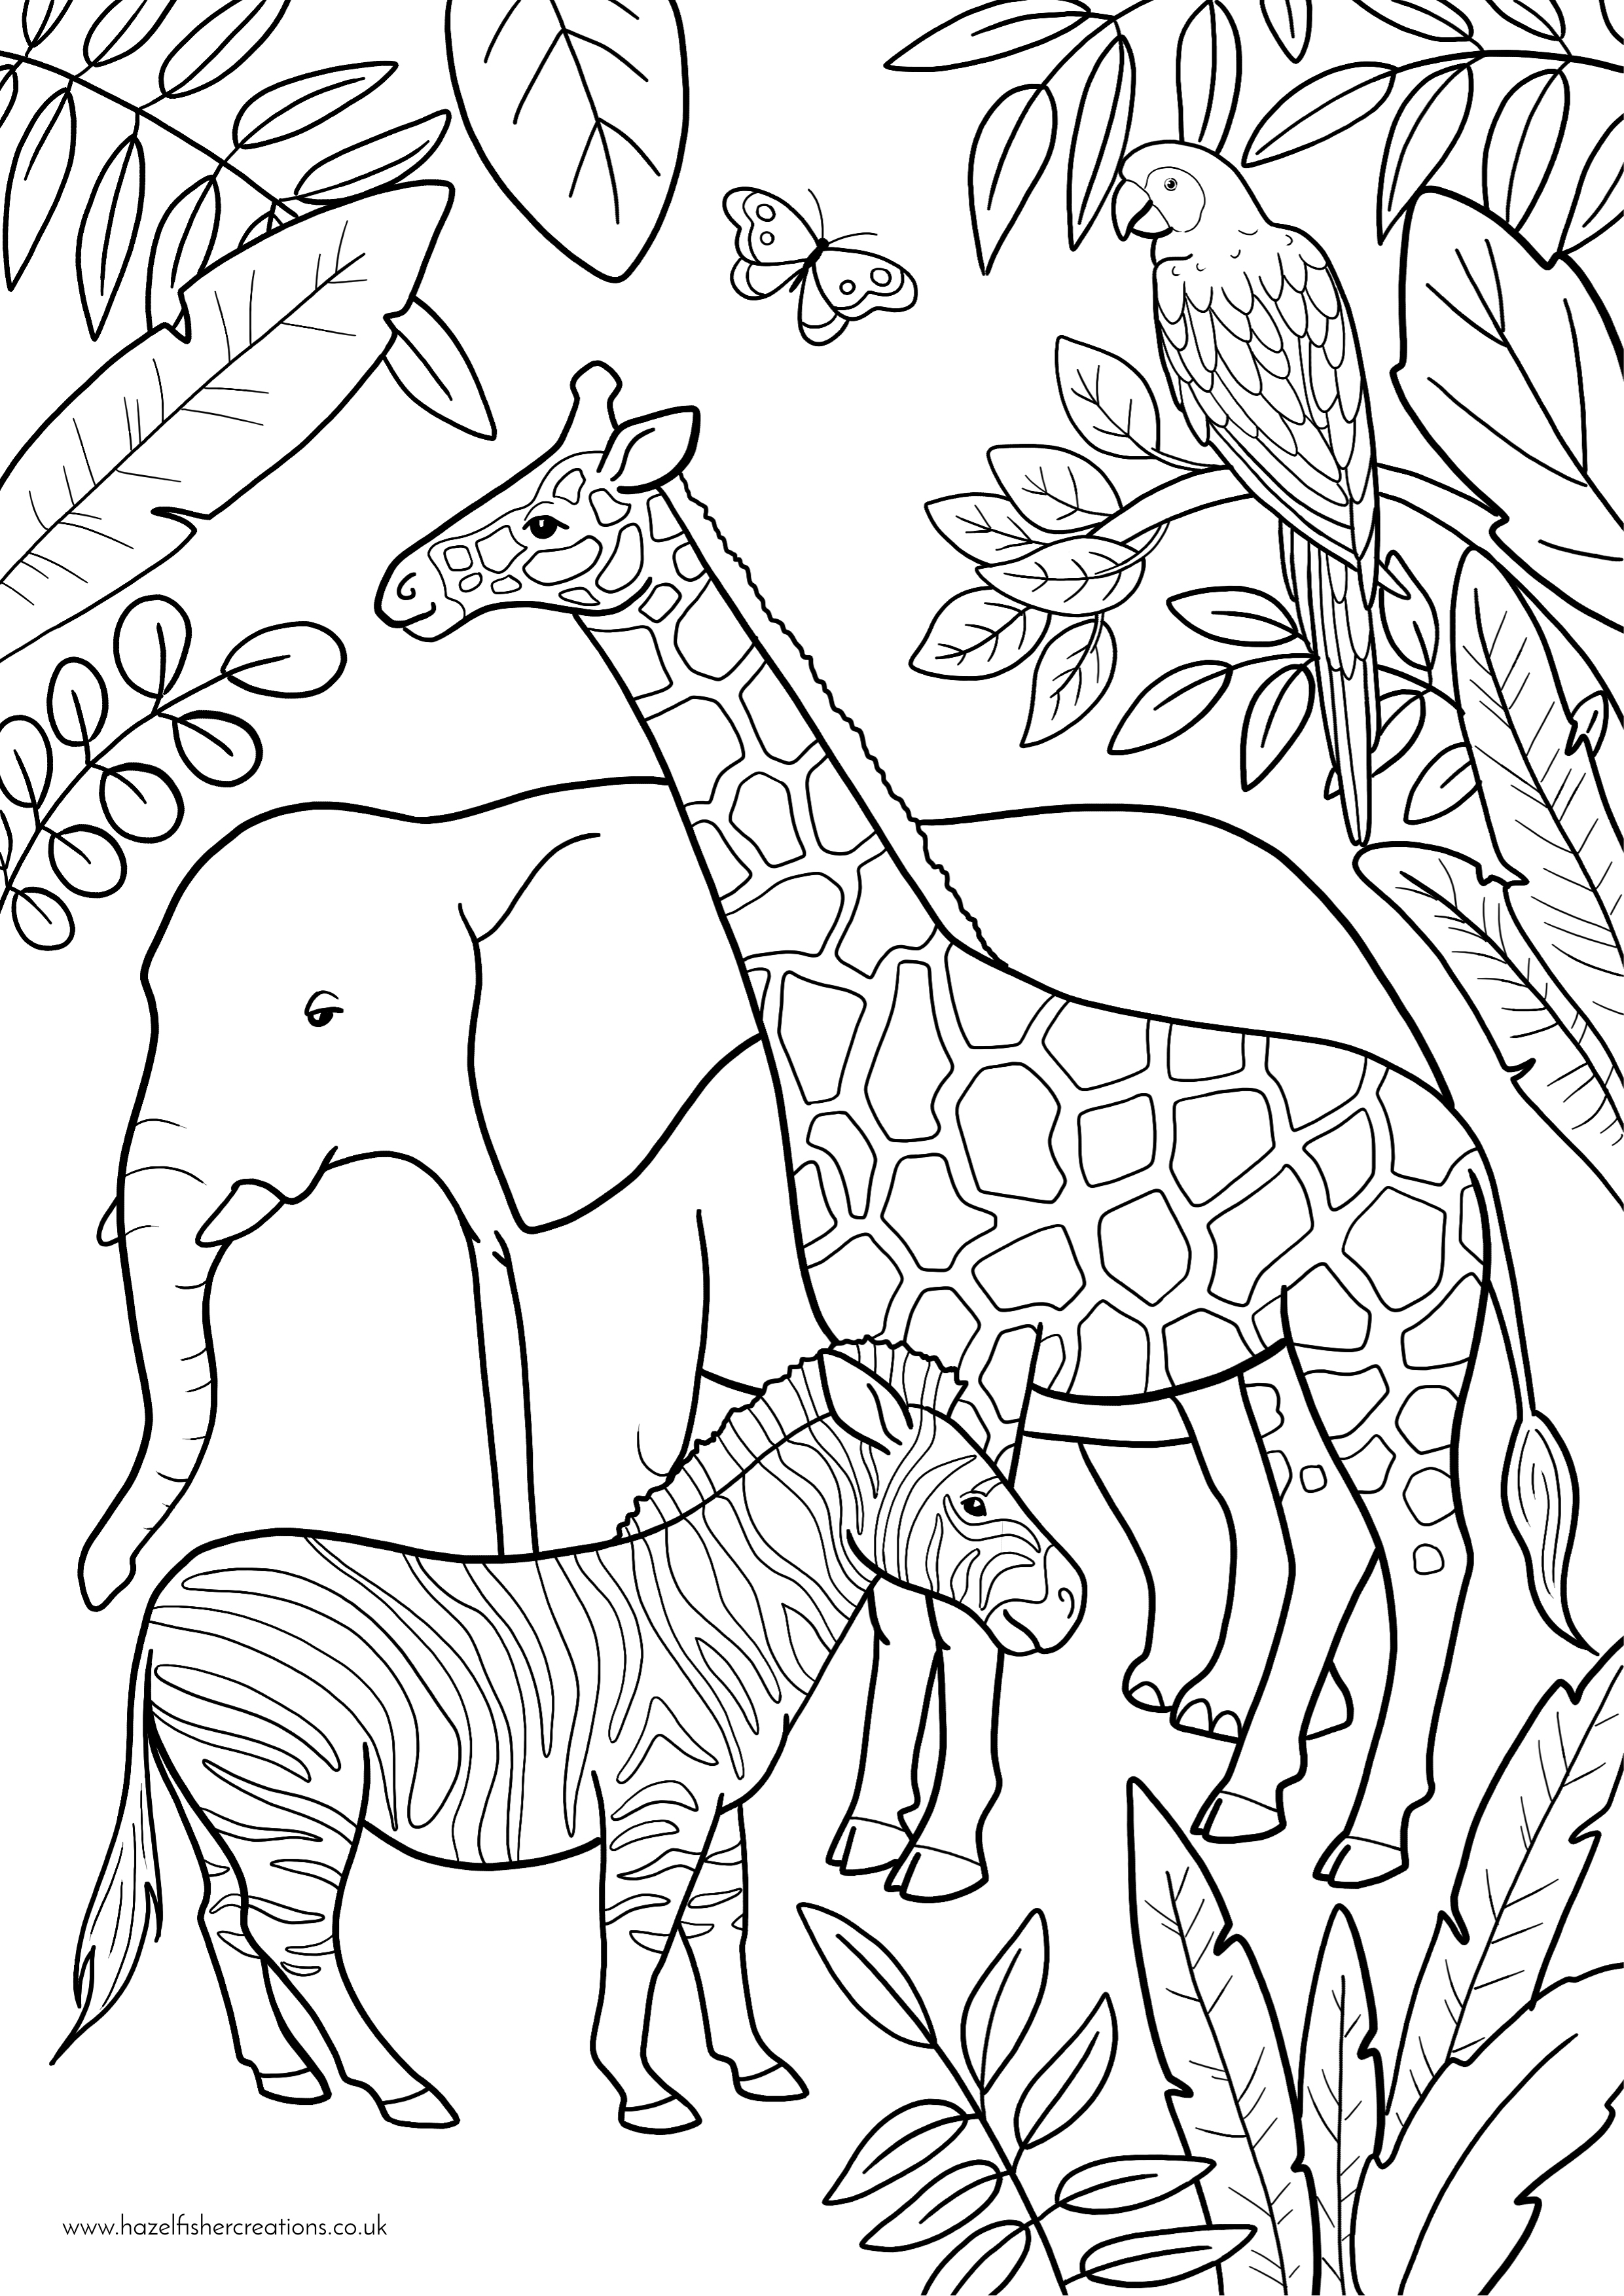 Zoo Animals Colouring In Activity Sheet   image